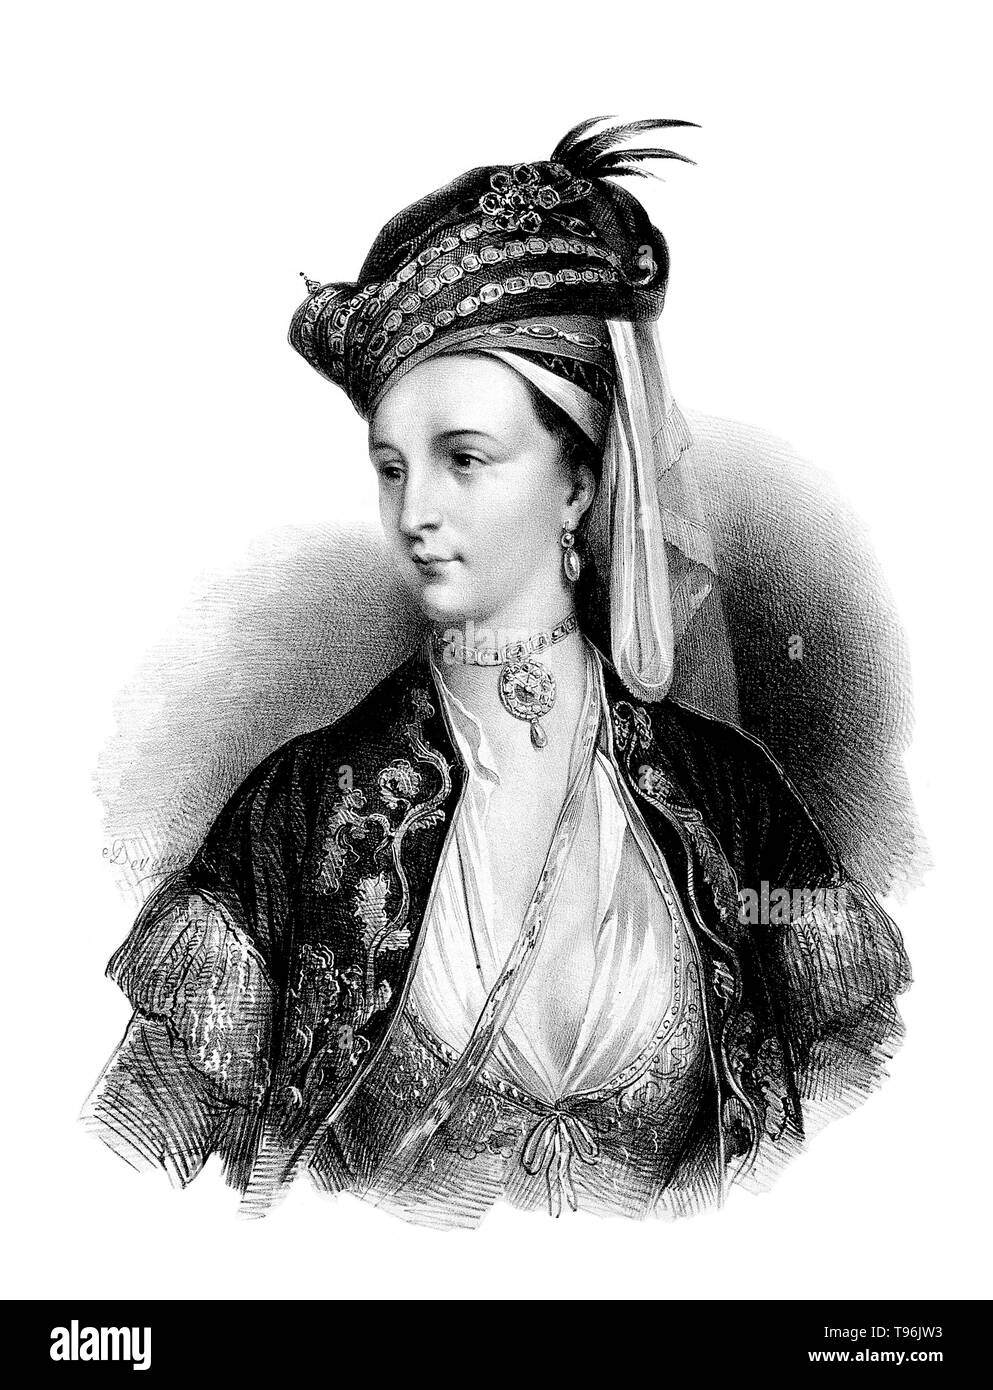 Lady Mary in Turkish dress. Lady Mary Wortley Montagu (1689 - August 21, 1762) was an English aristocrat, letter writer and poet. Lady Mary is today chiefly remembered for her travels to the Ottoman Empire, as wife to the British ambassador to Turkey. The story of this voyage and of her observations of Eastern life is told in Letters from Turkey. During her visit she was charmed by the beauty and hospitality of the Ottoman women she encountered. She wrote about misconceptions previous travelers, specifically male travelers, had recorded about the religion, traditions and the treatment of women - Stock Image